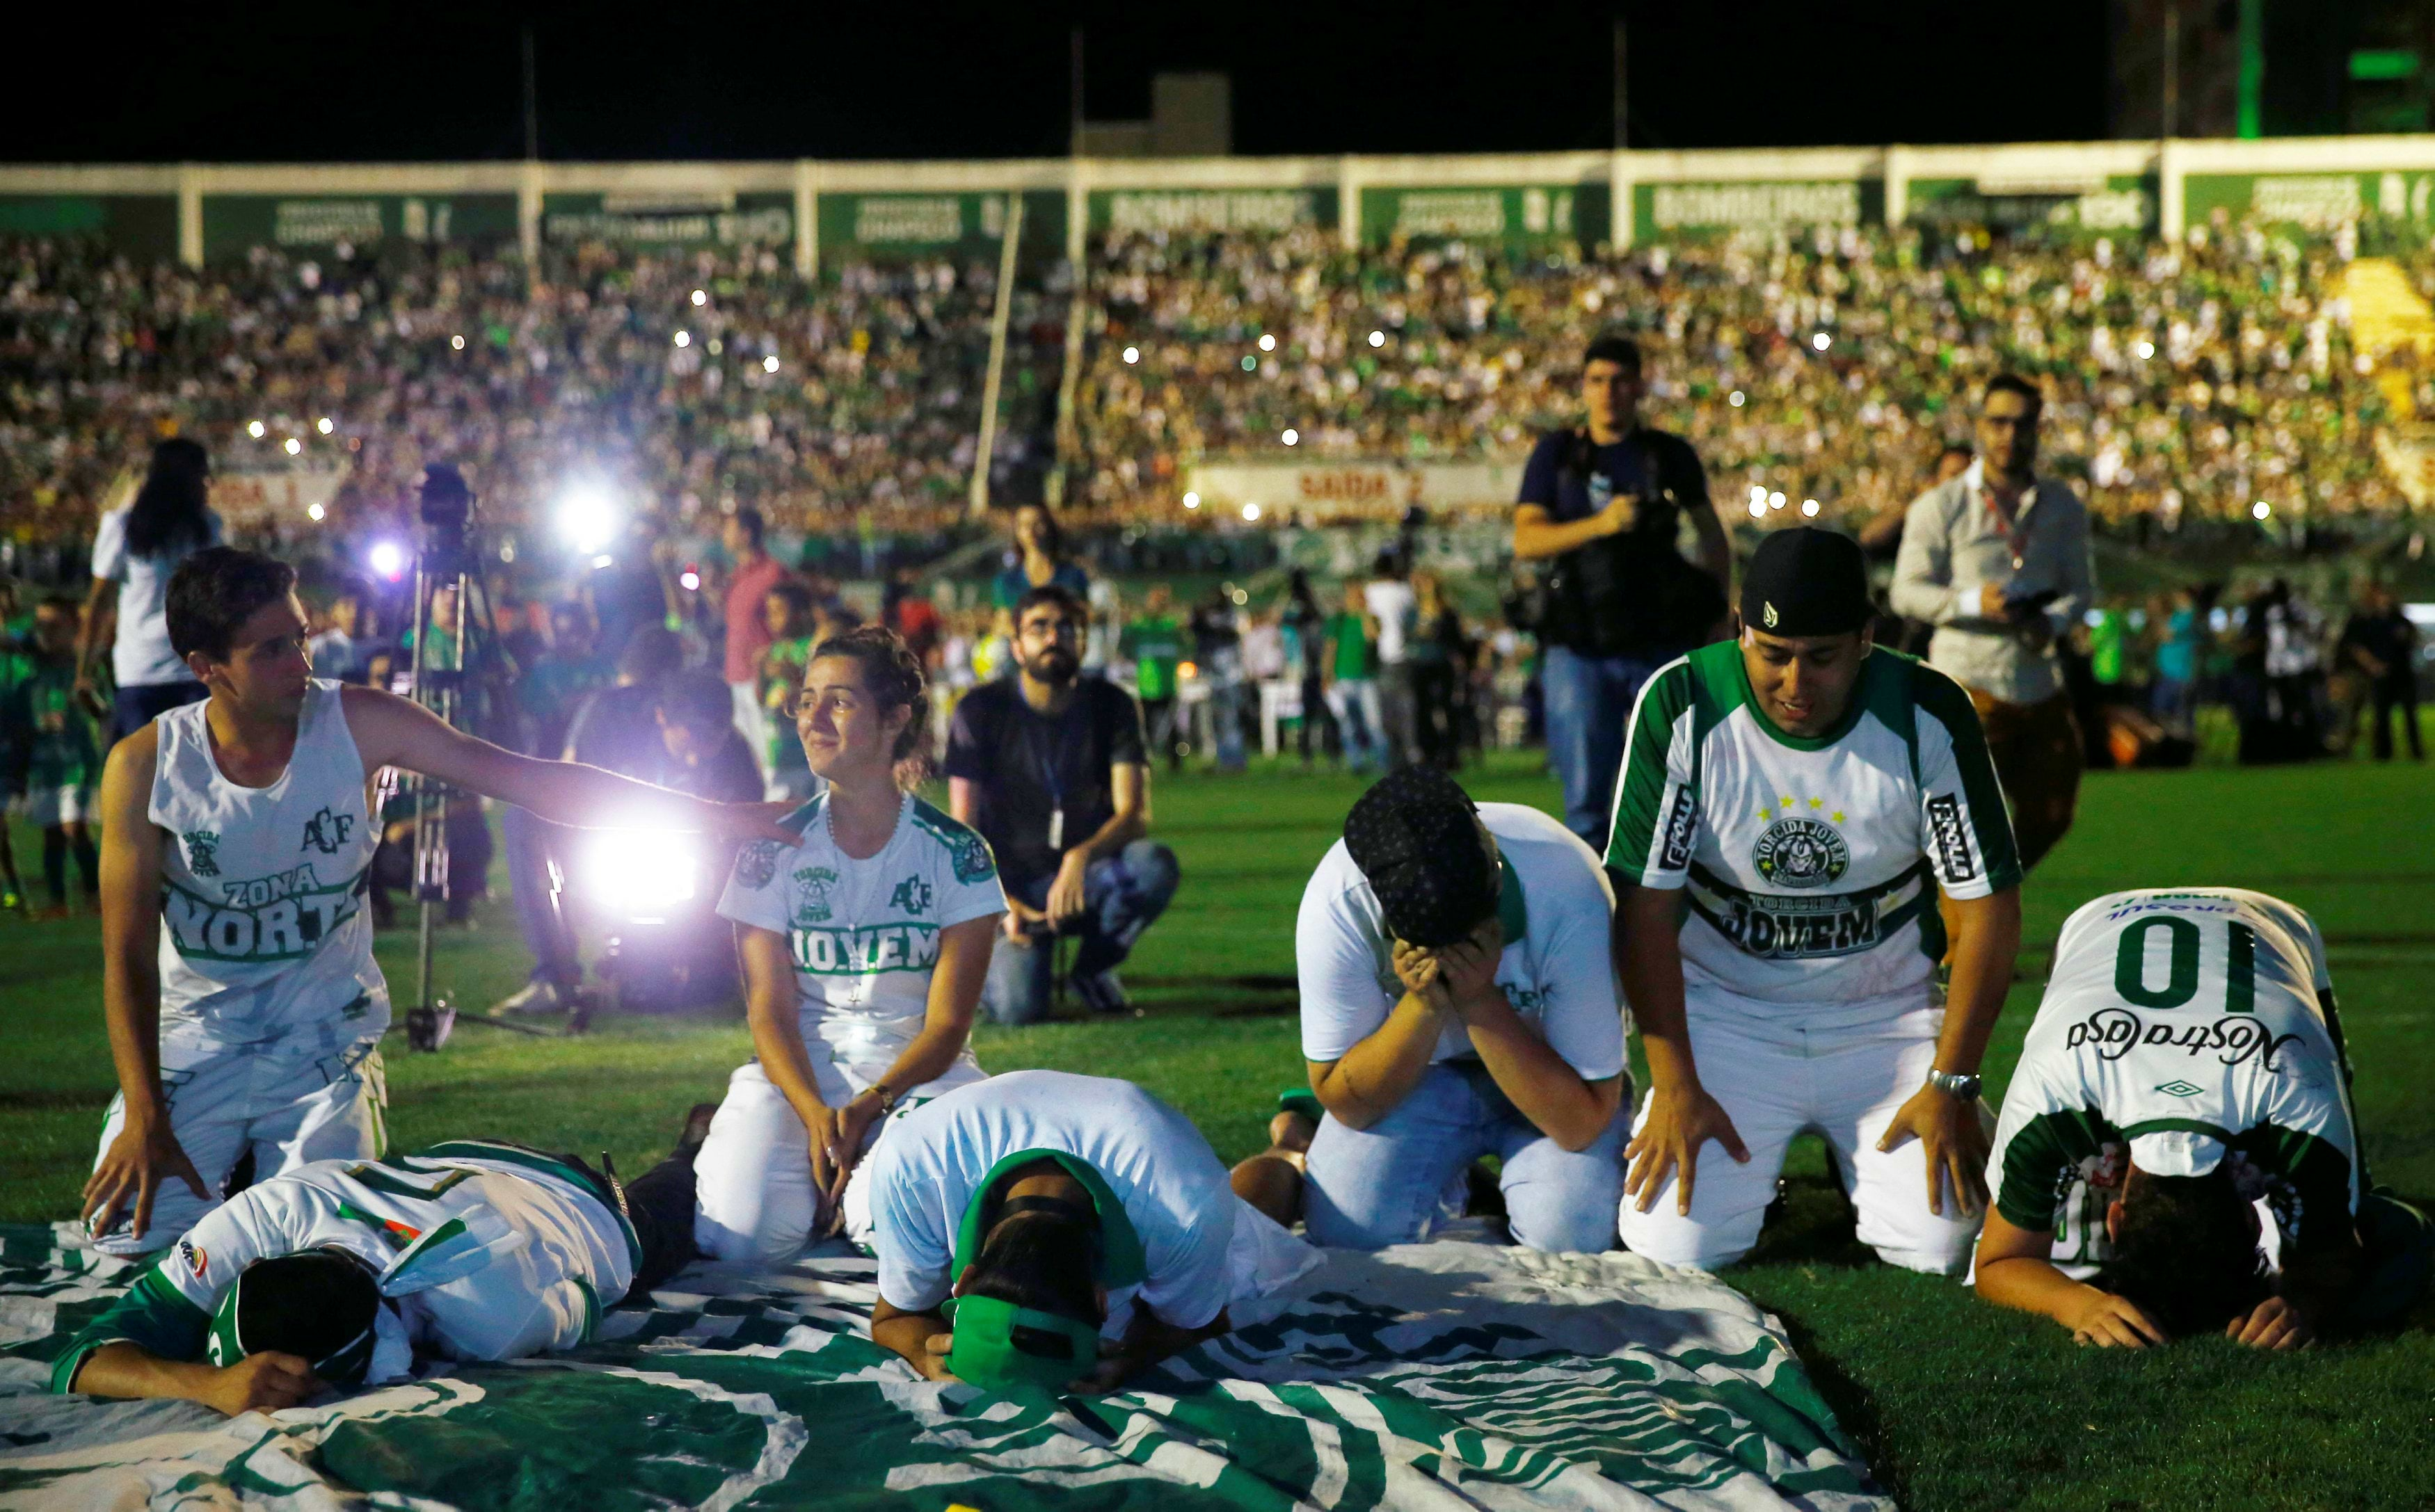 Fans of Chapecoense soccer team pay tribute to Chapecoense's players at the Arena Conda stadium in Chapeco, Brazil November 30, 2016. REUTERS/Ricardo Moraes